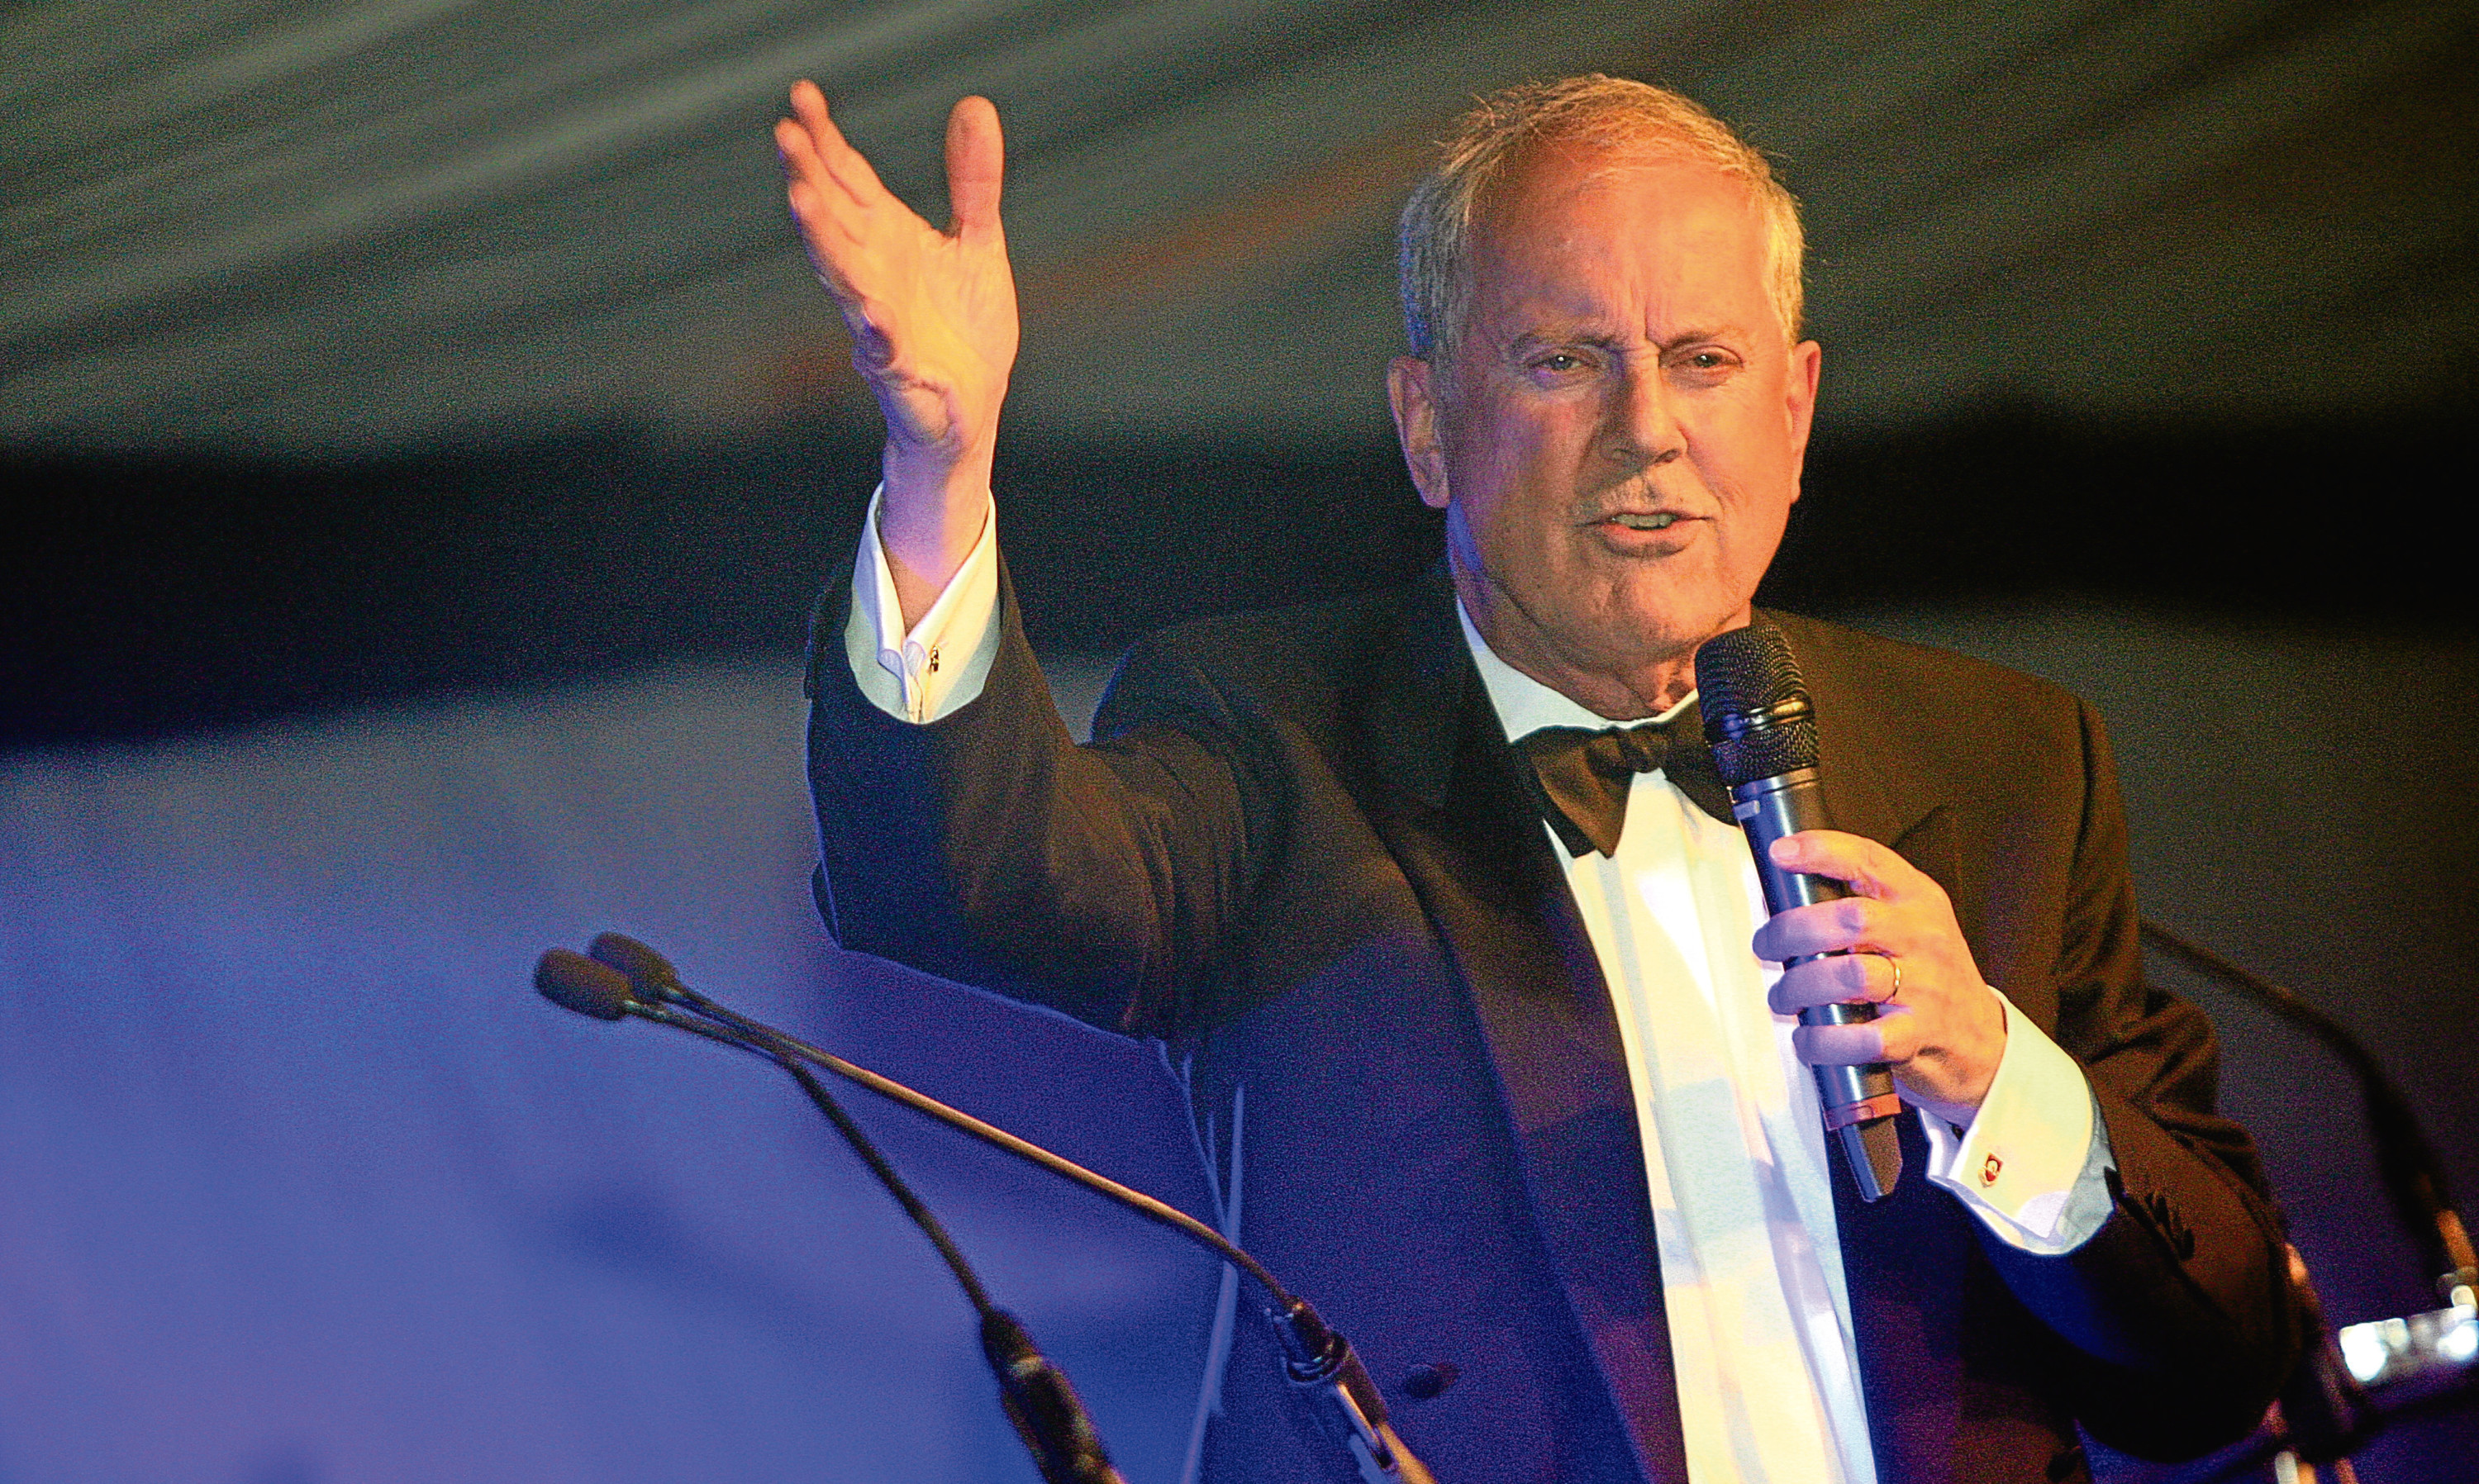 Back by popular demand: Gyles Brandreth returns as host of the 2017 Courier Business Awards